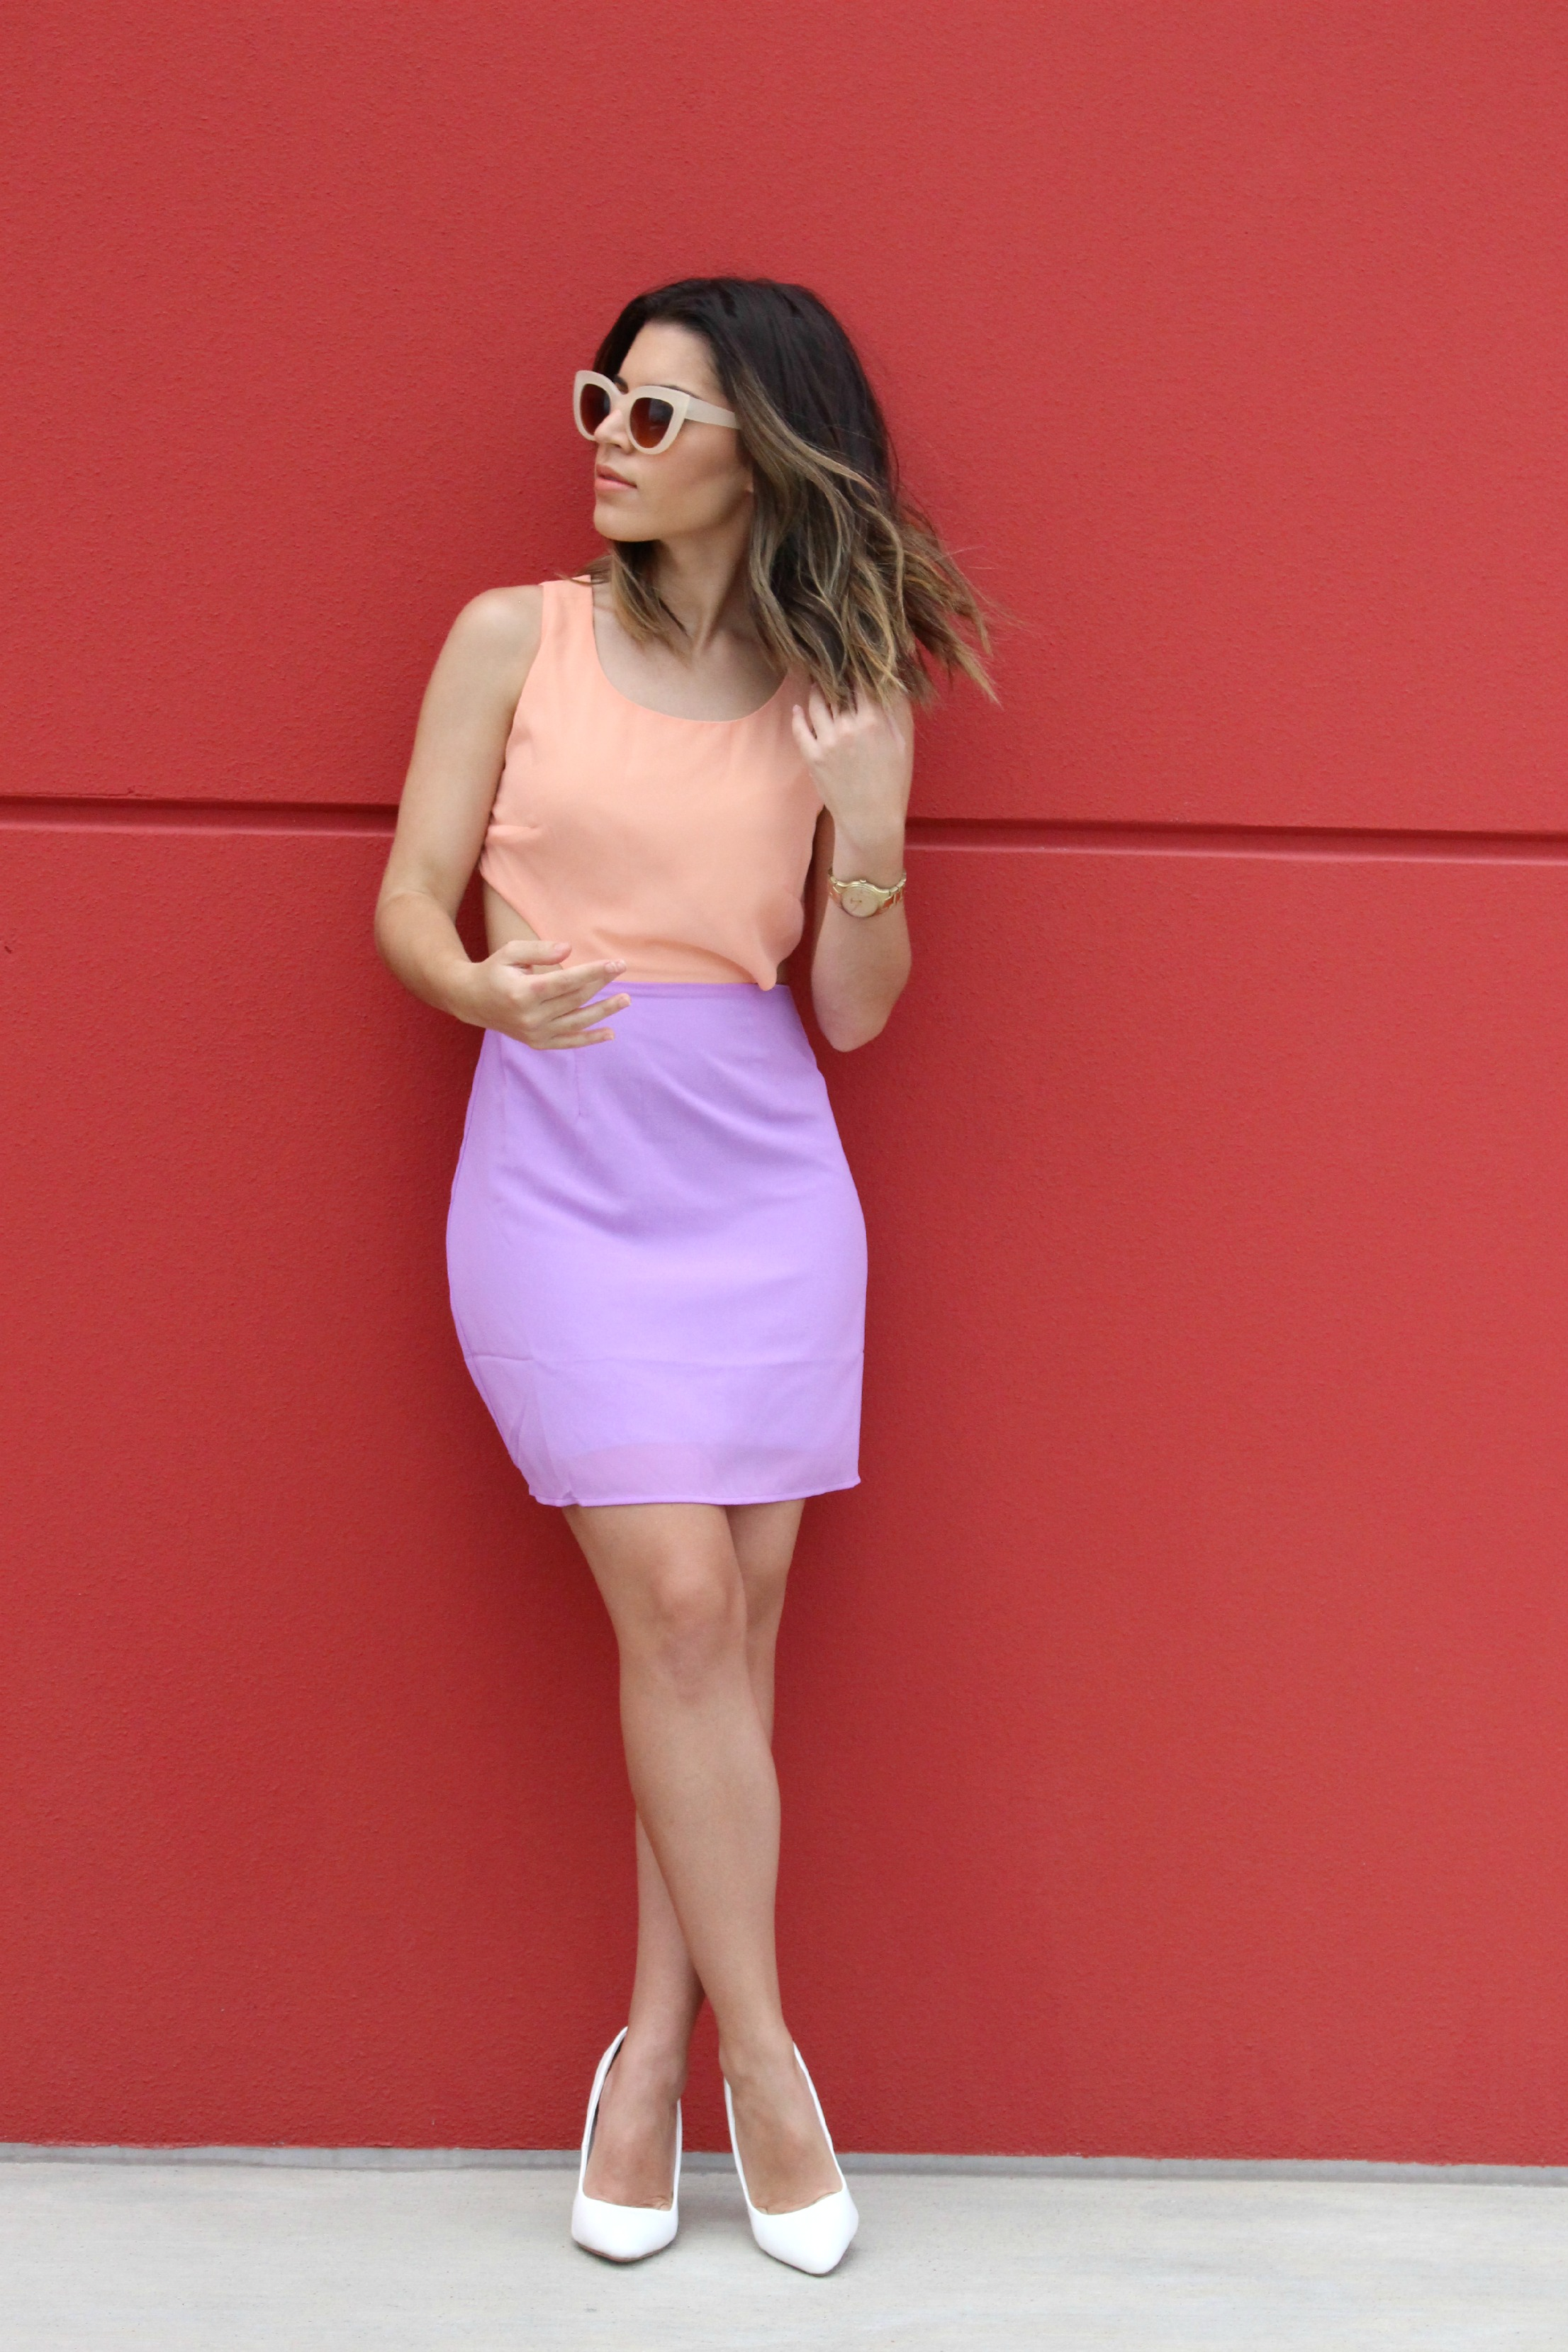 Dress  - ShopTobi//  Shoes  - DSW// Watch  - Fossil// Sunnies  - Sunglasspot.com